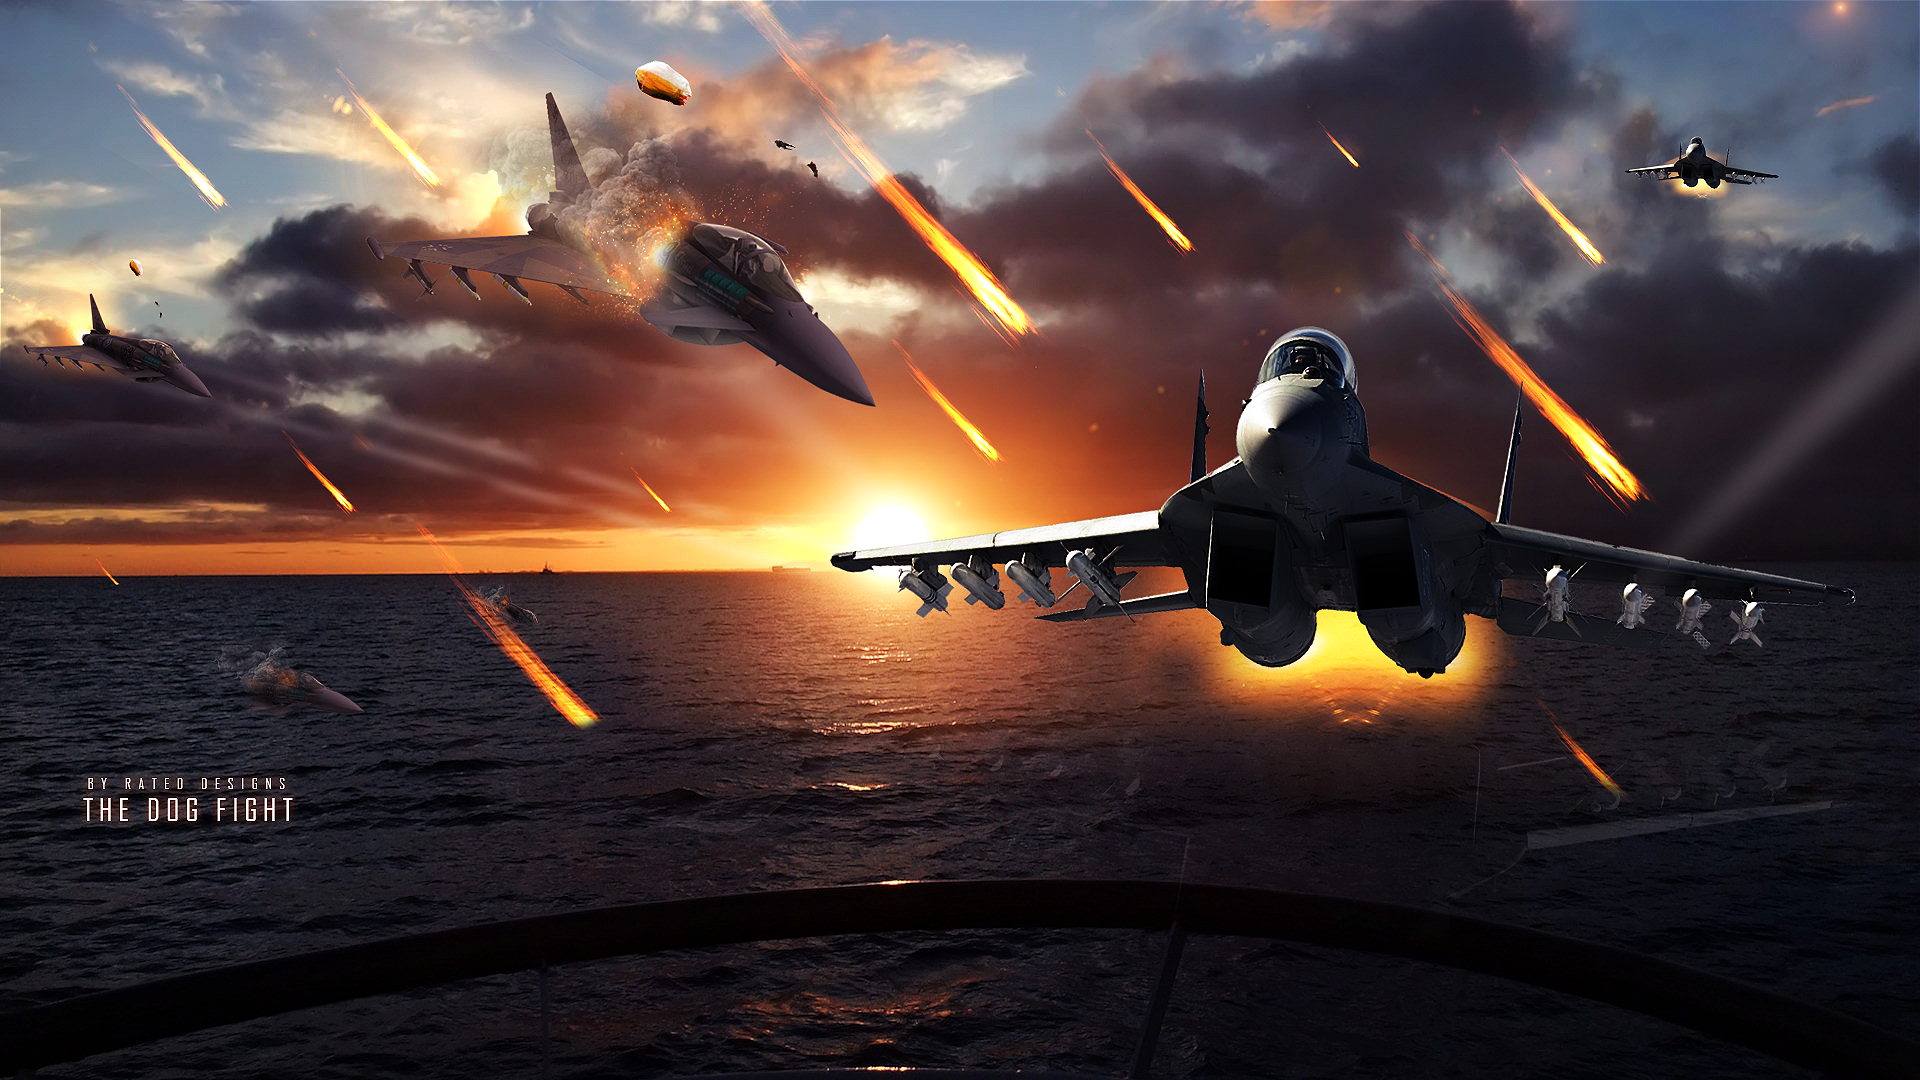 Kampfjets full hd wallpaper and hintergrund 1920x1080 for Full wall wallpaper